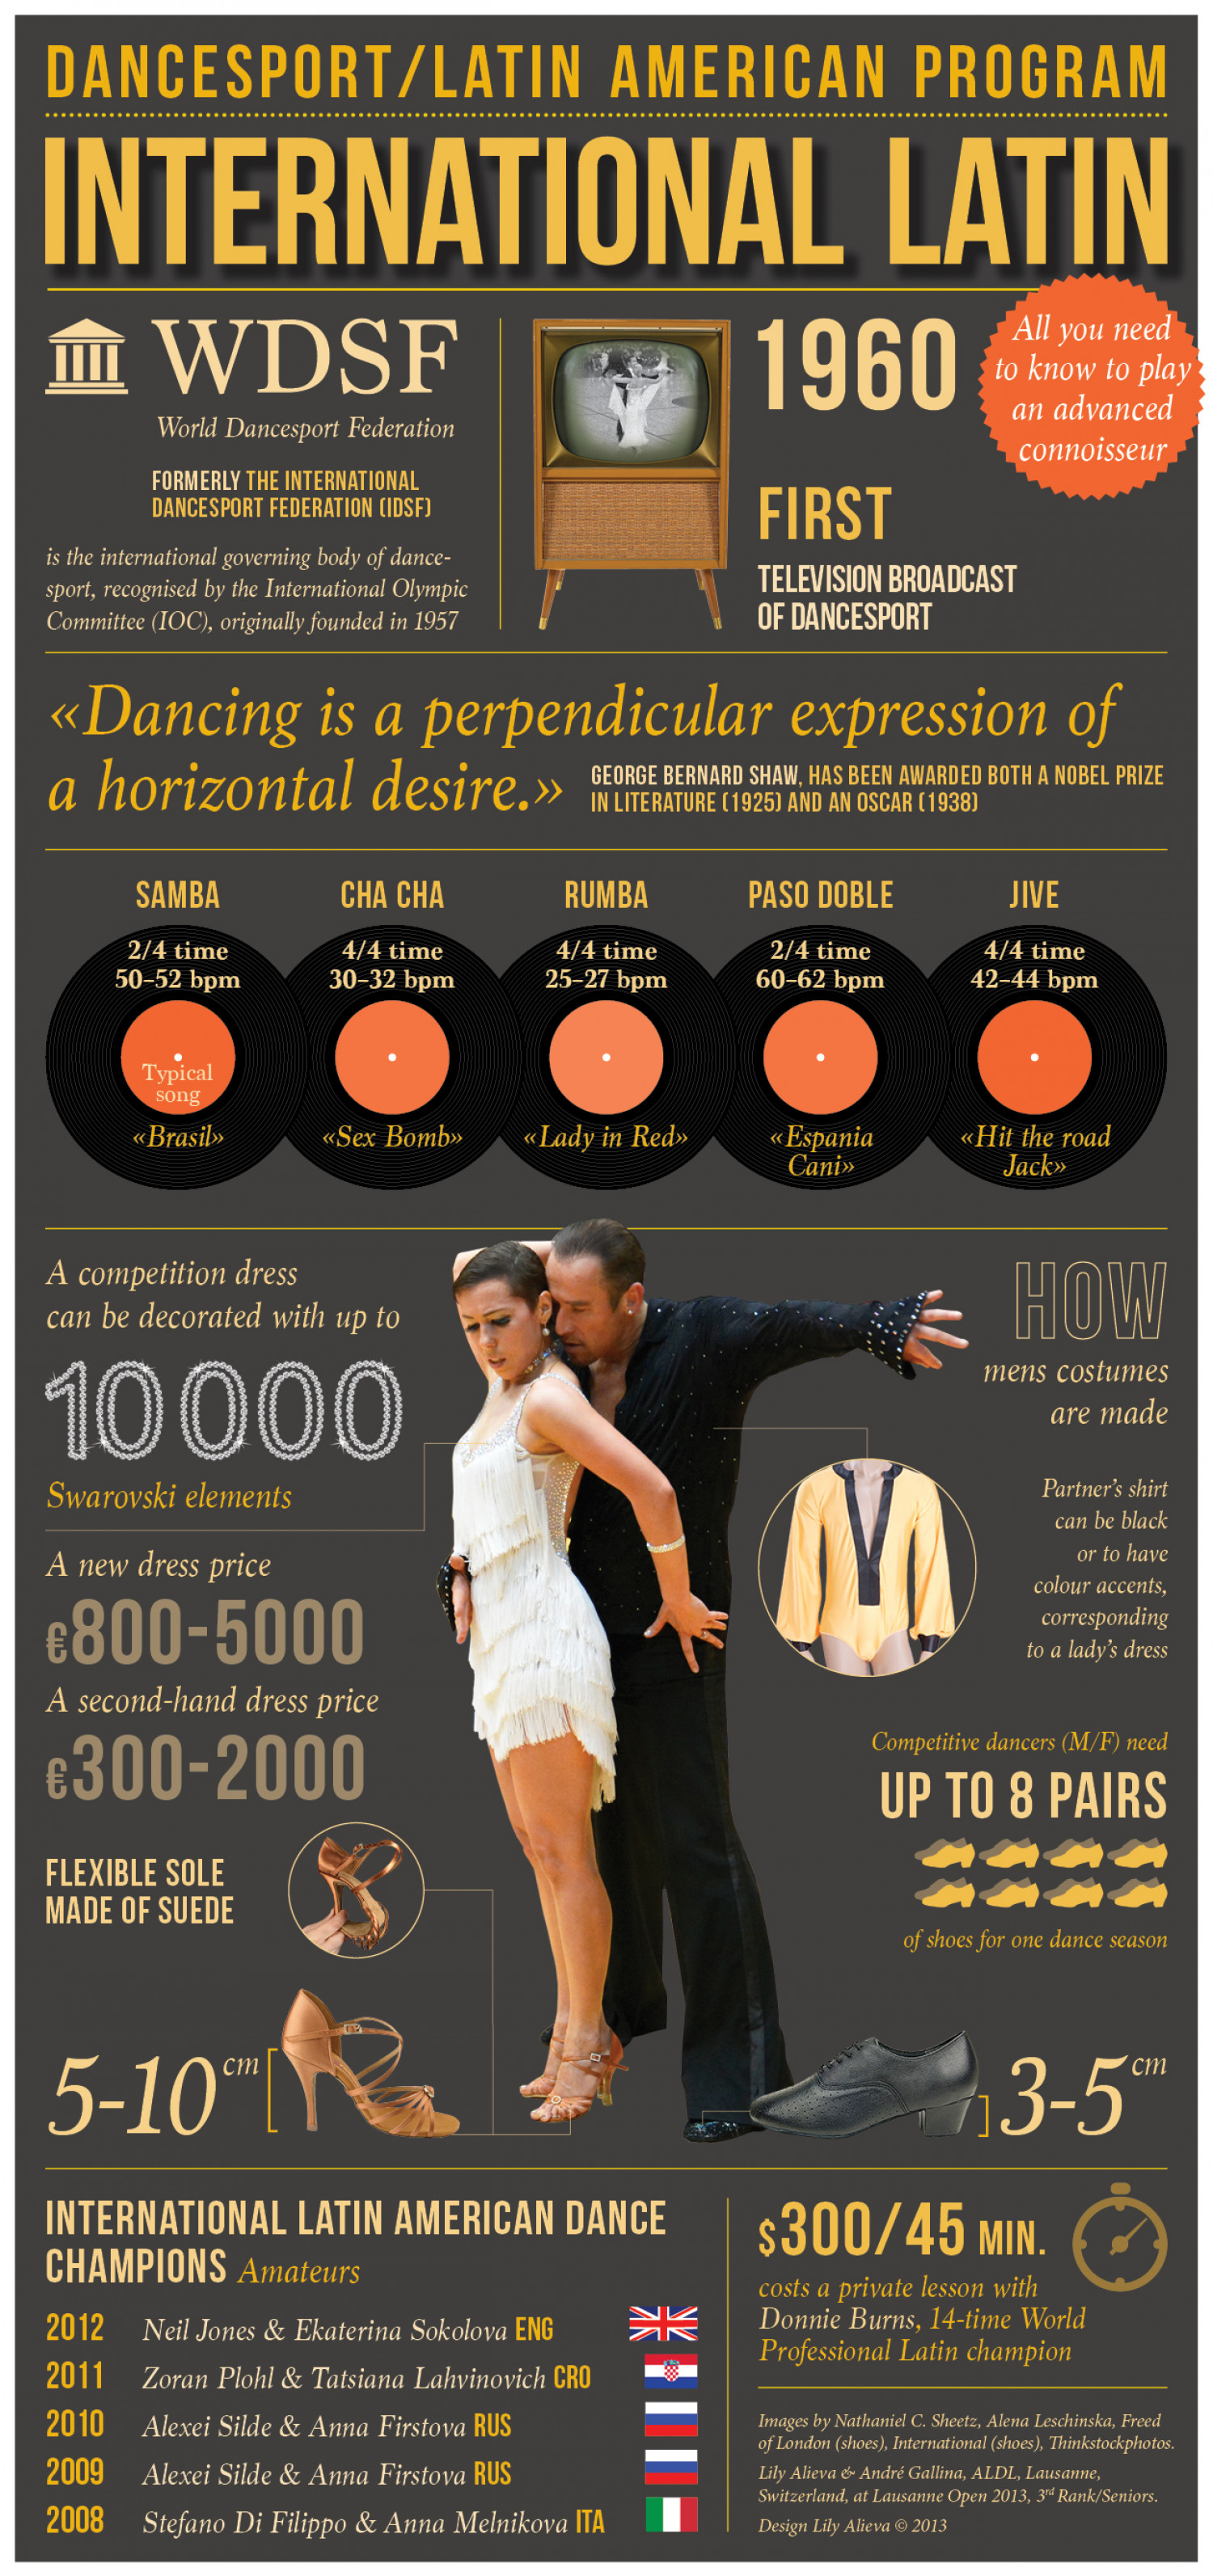 Dancesport: Latin American program Infographic